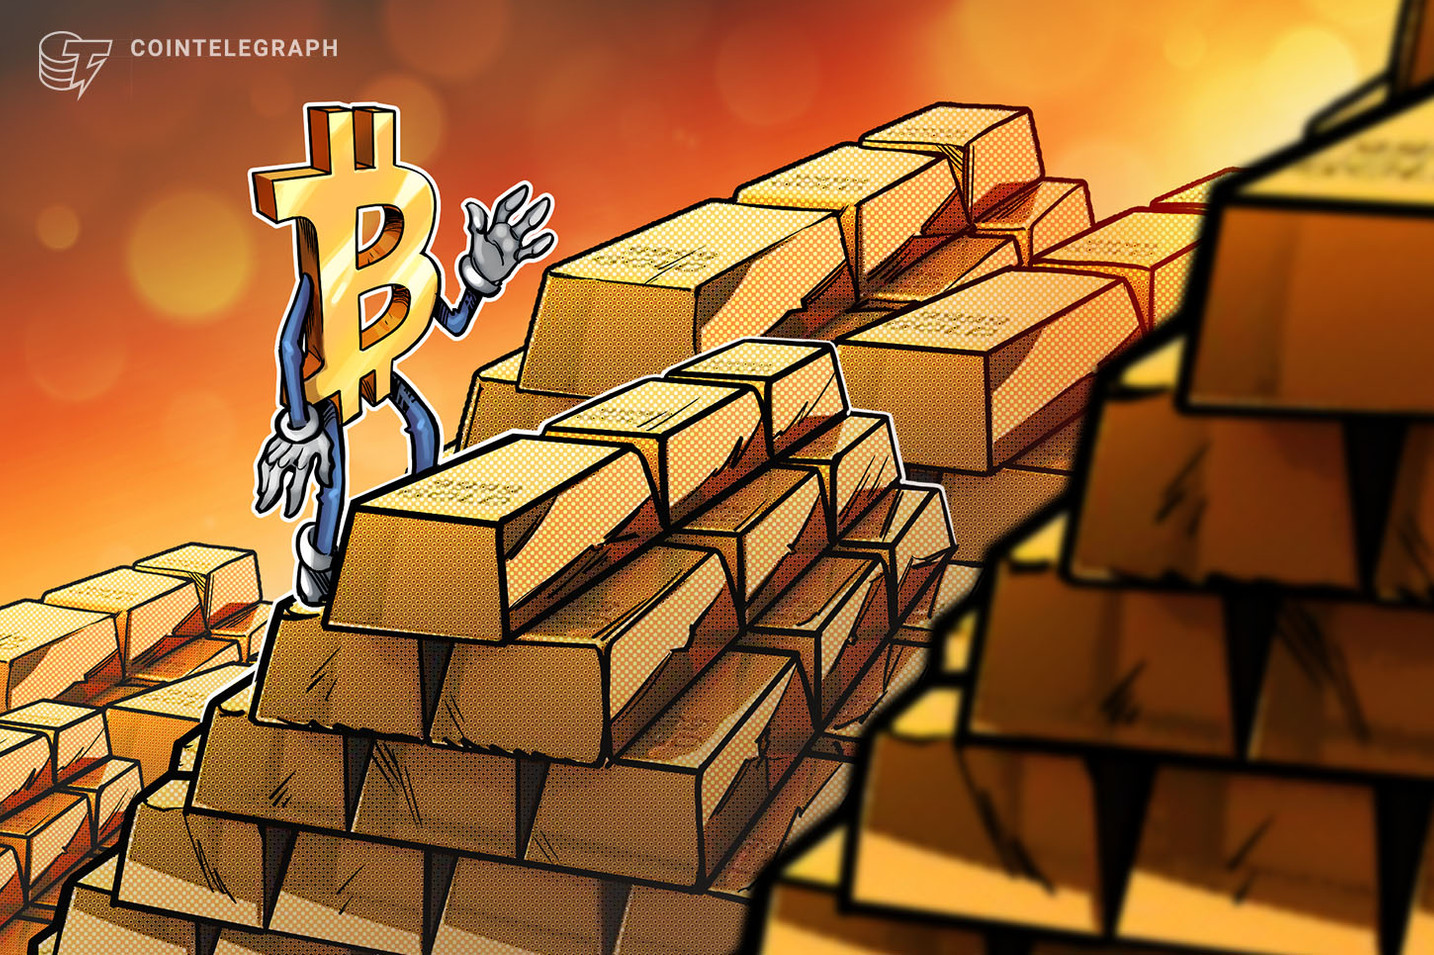 One Bitcoin now buys 0.6 kilograms of gold as 10-year returns turn negative